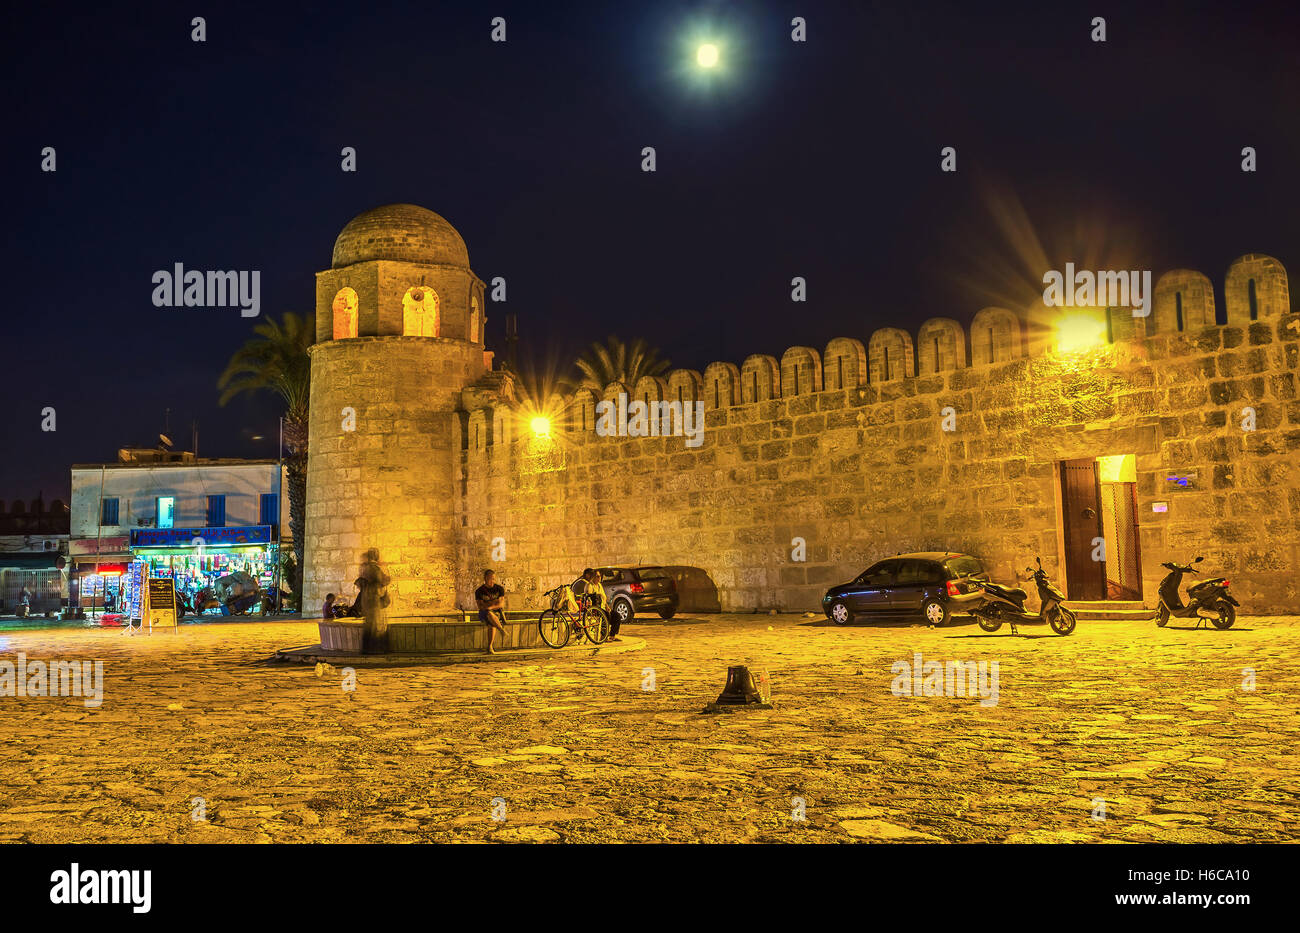 The mediavel walls of the Grand Mosque in the bright evening illumination - Stock Image